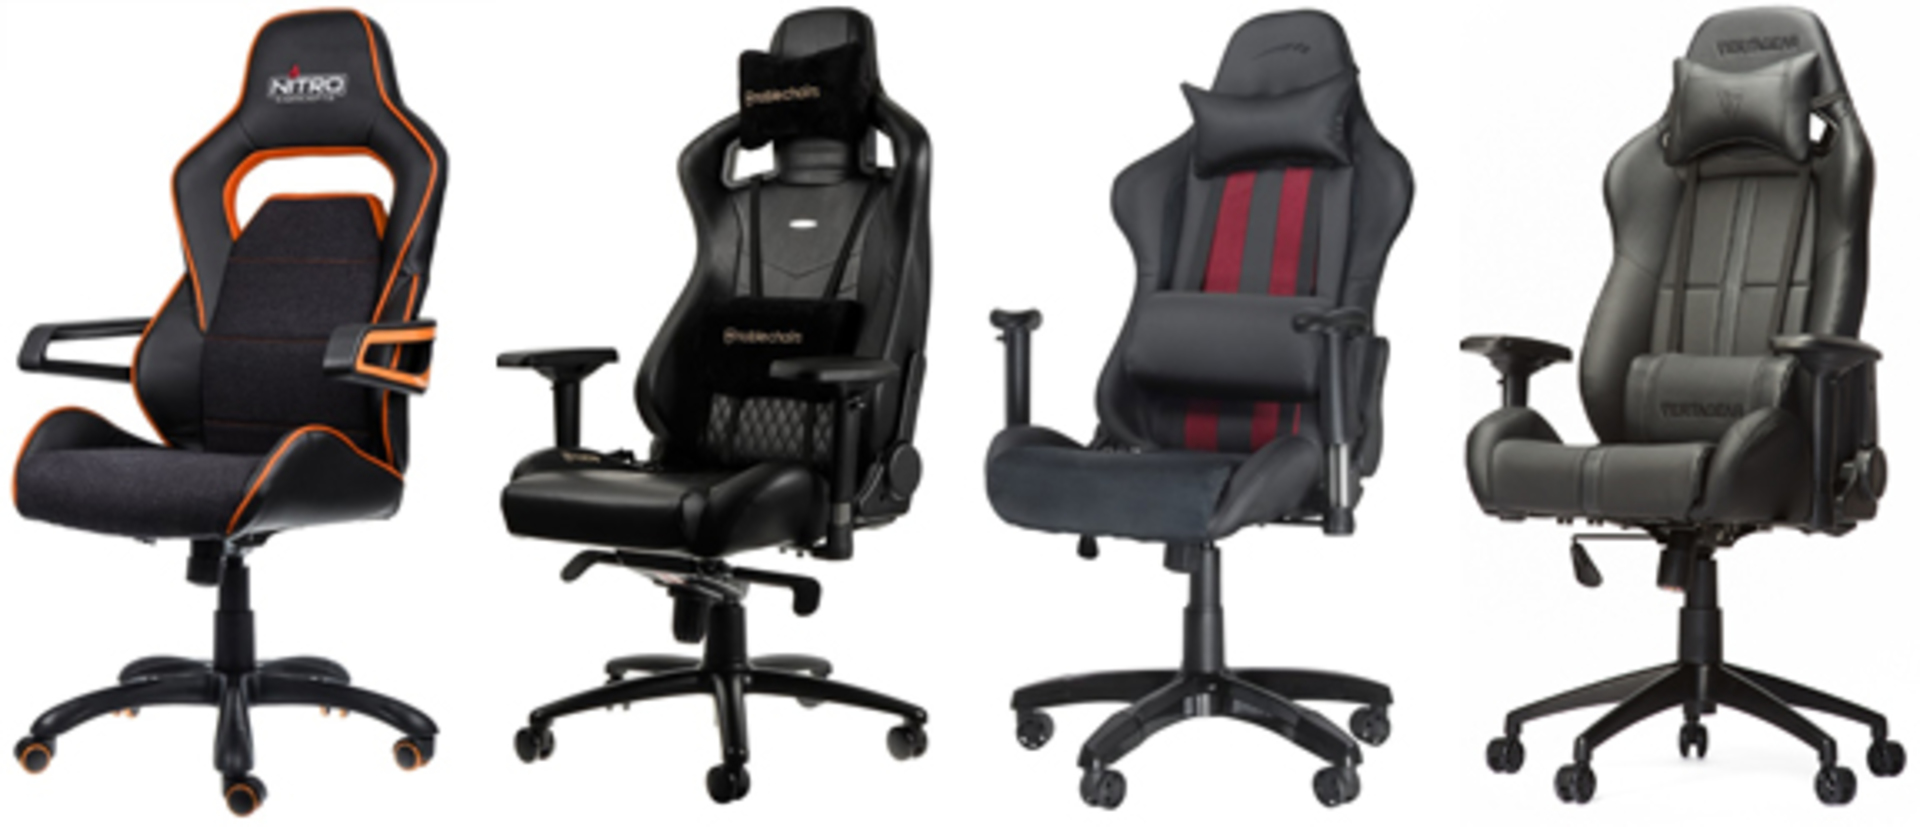 Fauteuils Quersus Elegant Finest Gamer Stoel With Gamer Stoel With Quersus Stoel